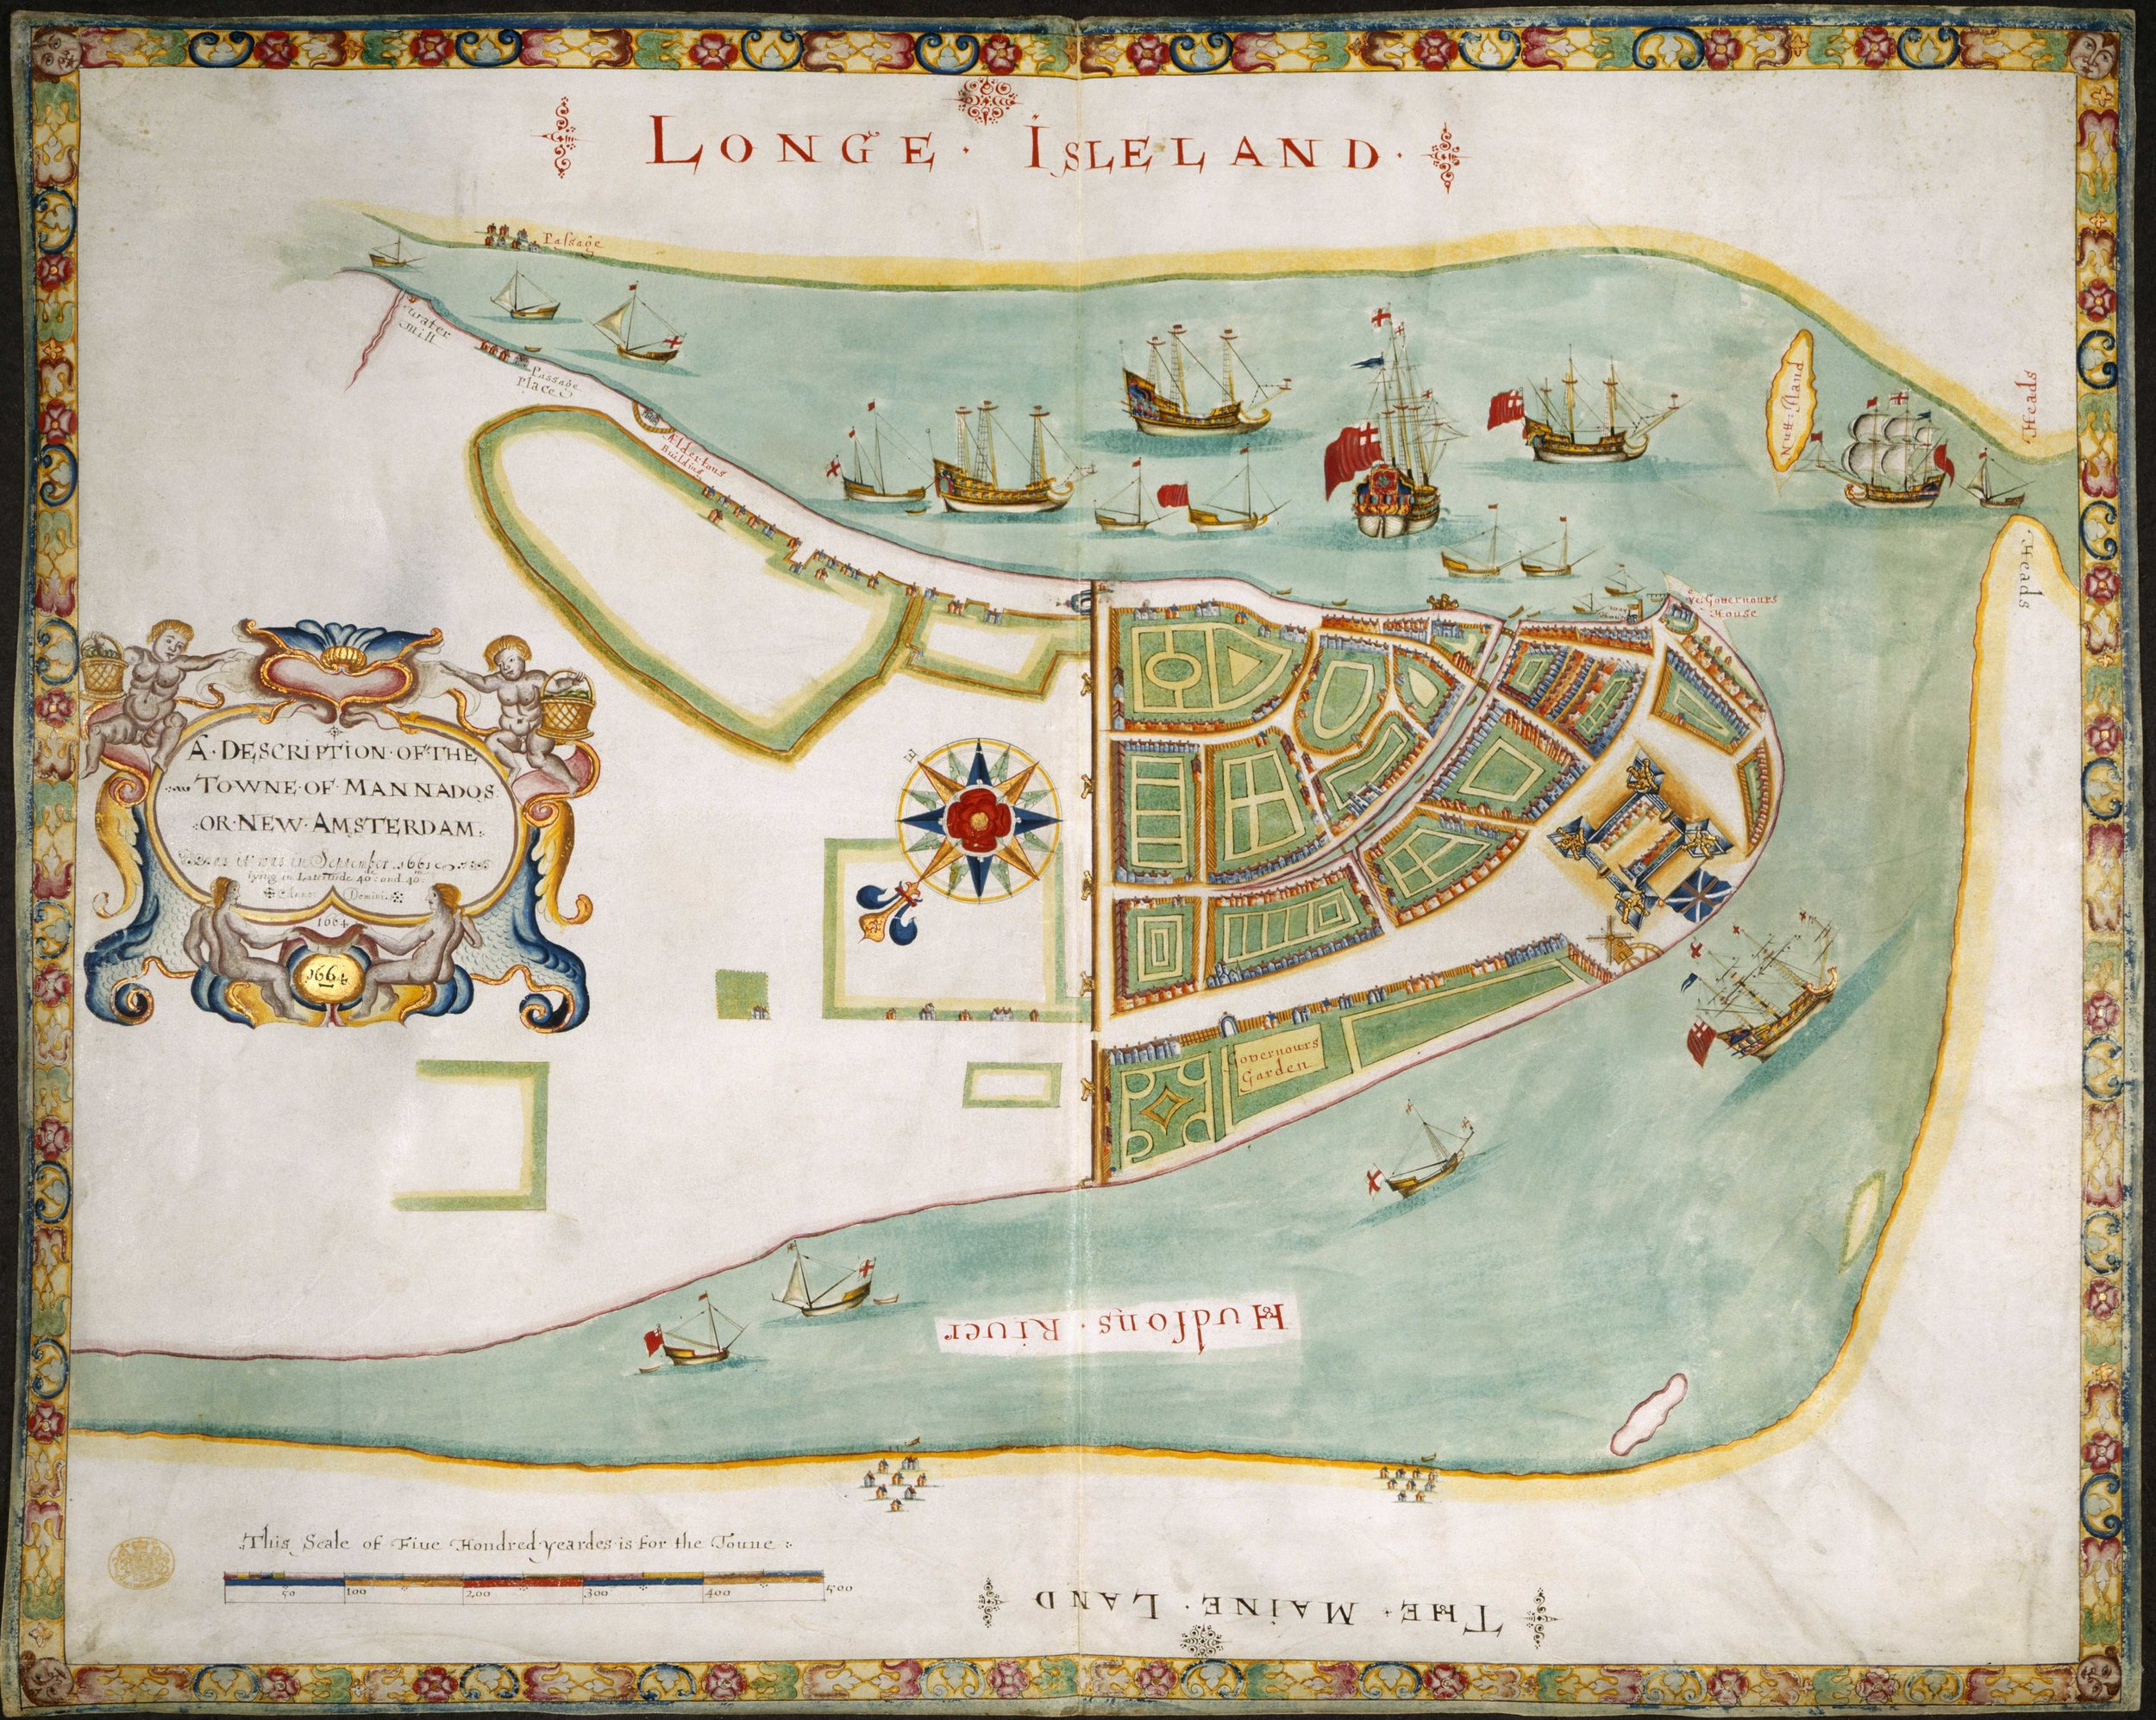 """This decorative map shows the English fleet sailing into New Amsterdam in 1664, and it was presented to James the Duke of York, perhaps to request his patronage and name. Known as The Duke's Plan, it was drawn by Robert Holmes, but his source was either the Cortelyou survey or an English spy, possibly Governor Winthrop.The wall on this plan simply crosses the island along Wall Street, but five cannon emplacements (bastions) are shown, as well as one in front of the Stadt Huys.The Water Gate and blockhouse are clearly shown as well, but the western wall in the 1661 Castello Plan is gone.As this map is stylized, and its source material unknown, its accuracy is in doubt, but the council discussions of February 1664 suggest that the river walls had fallen into disrepair. Contrary to recent claims, this was also the first map to show the North River as """"Hudsons River."""" Map courtesy the  British Library ."""